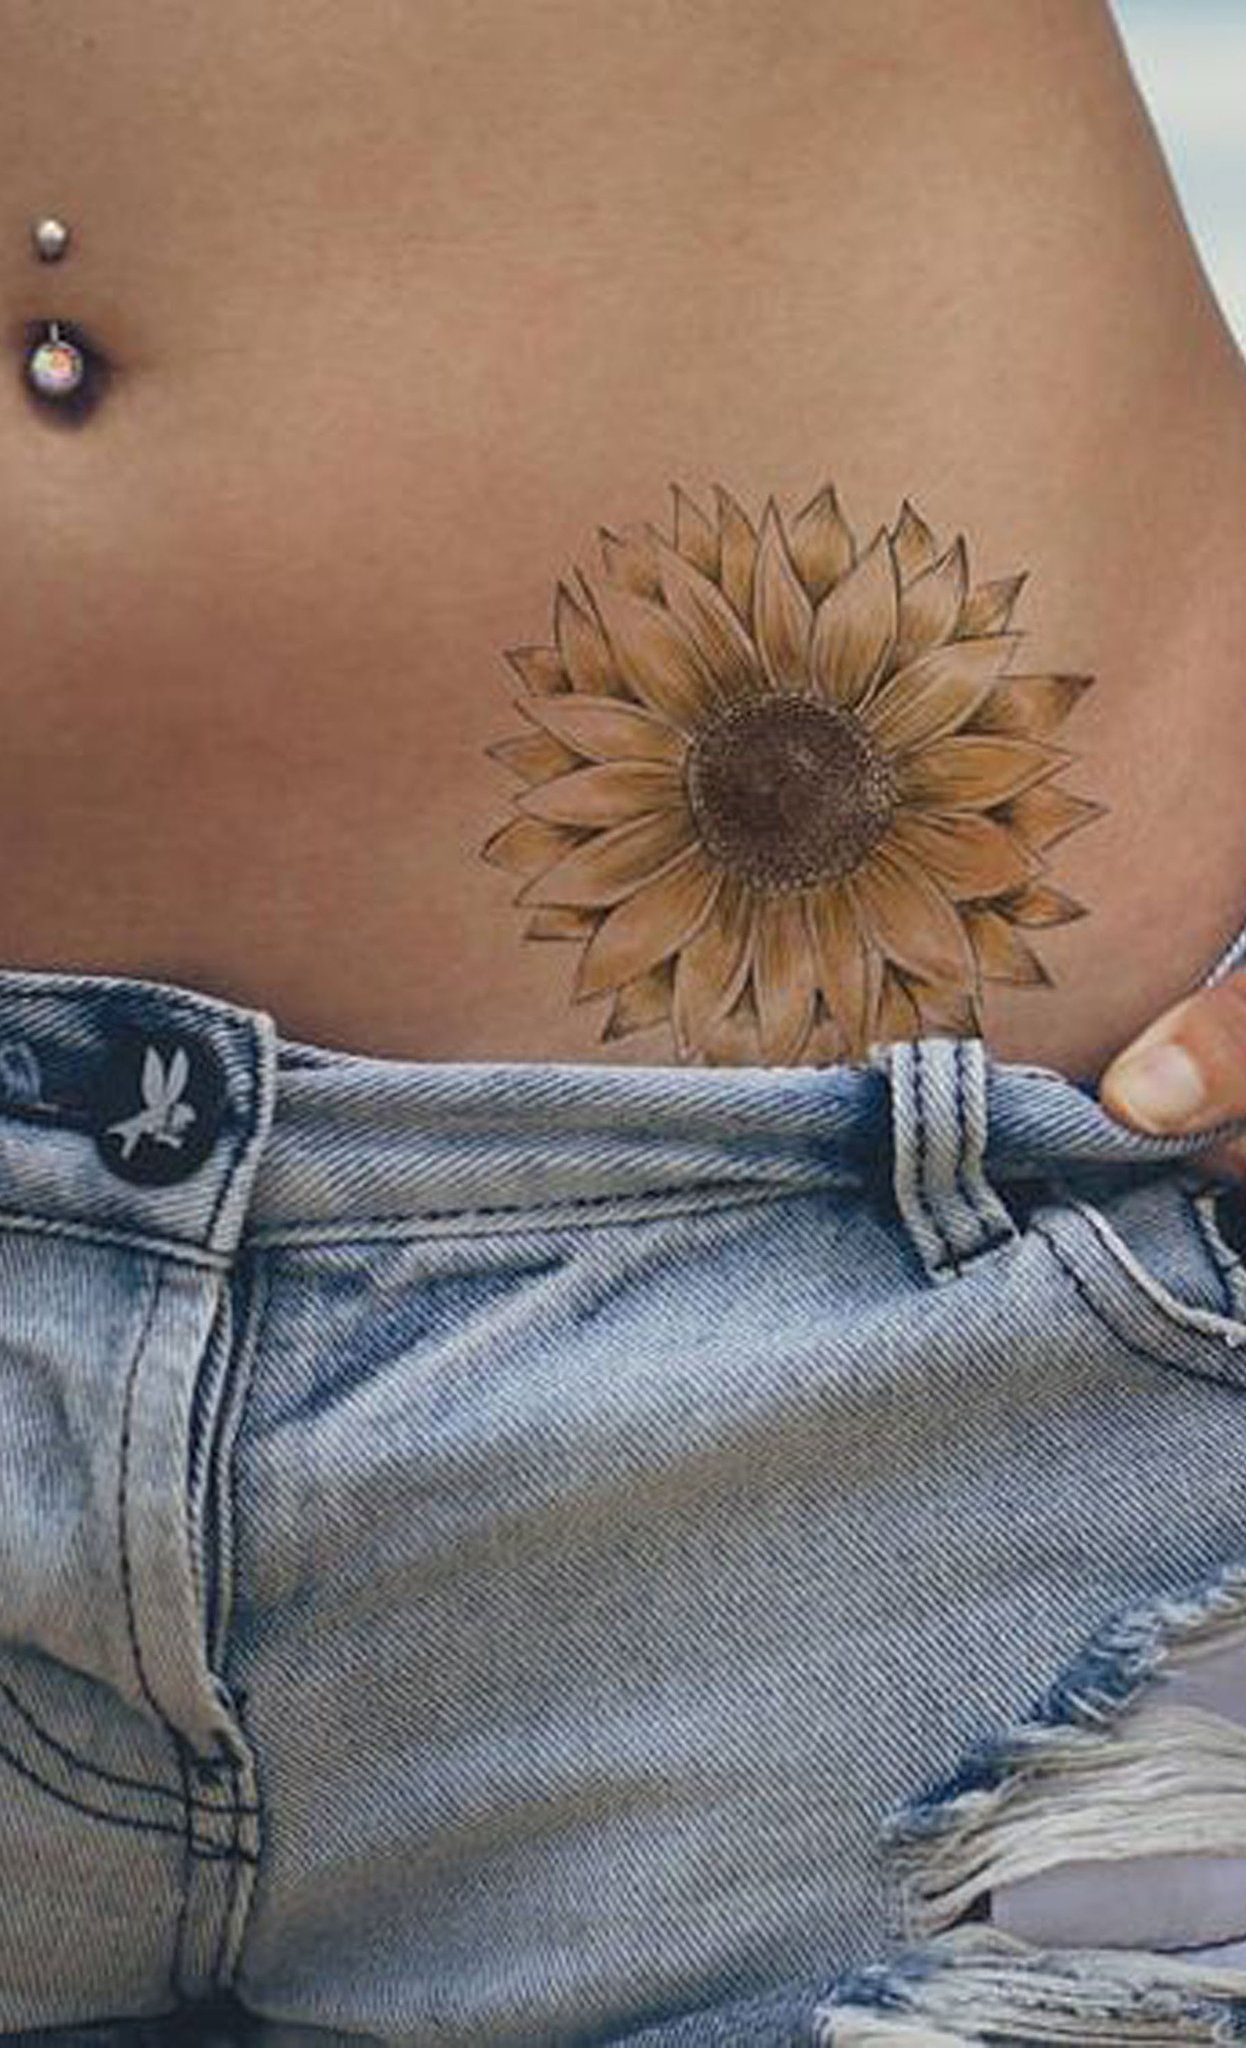 20 Of The Most Boujee Sunflower Tattoo Ideas  Tattoos -6291